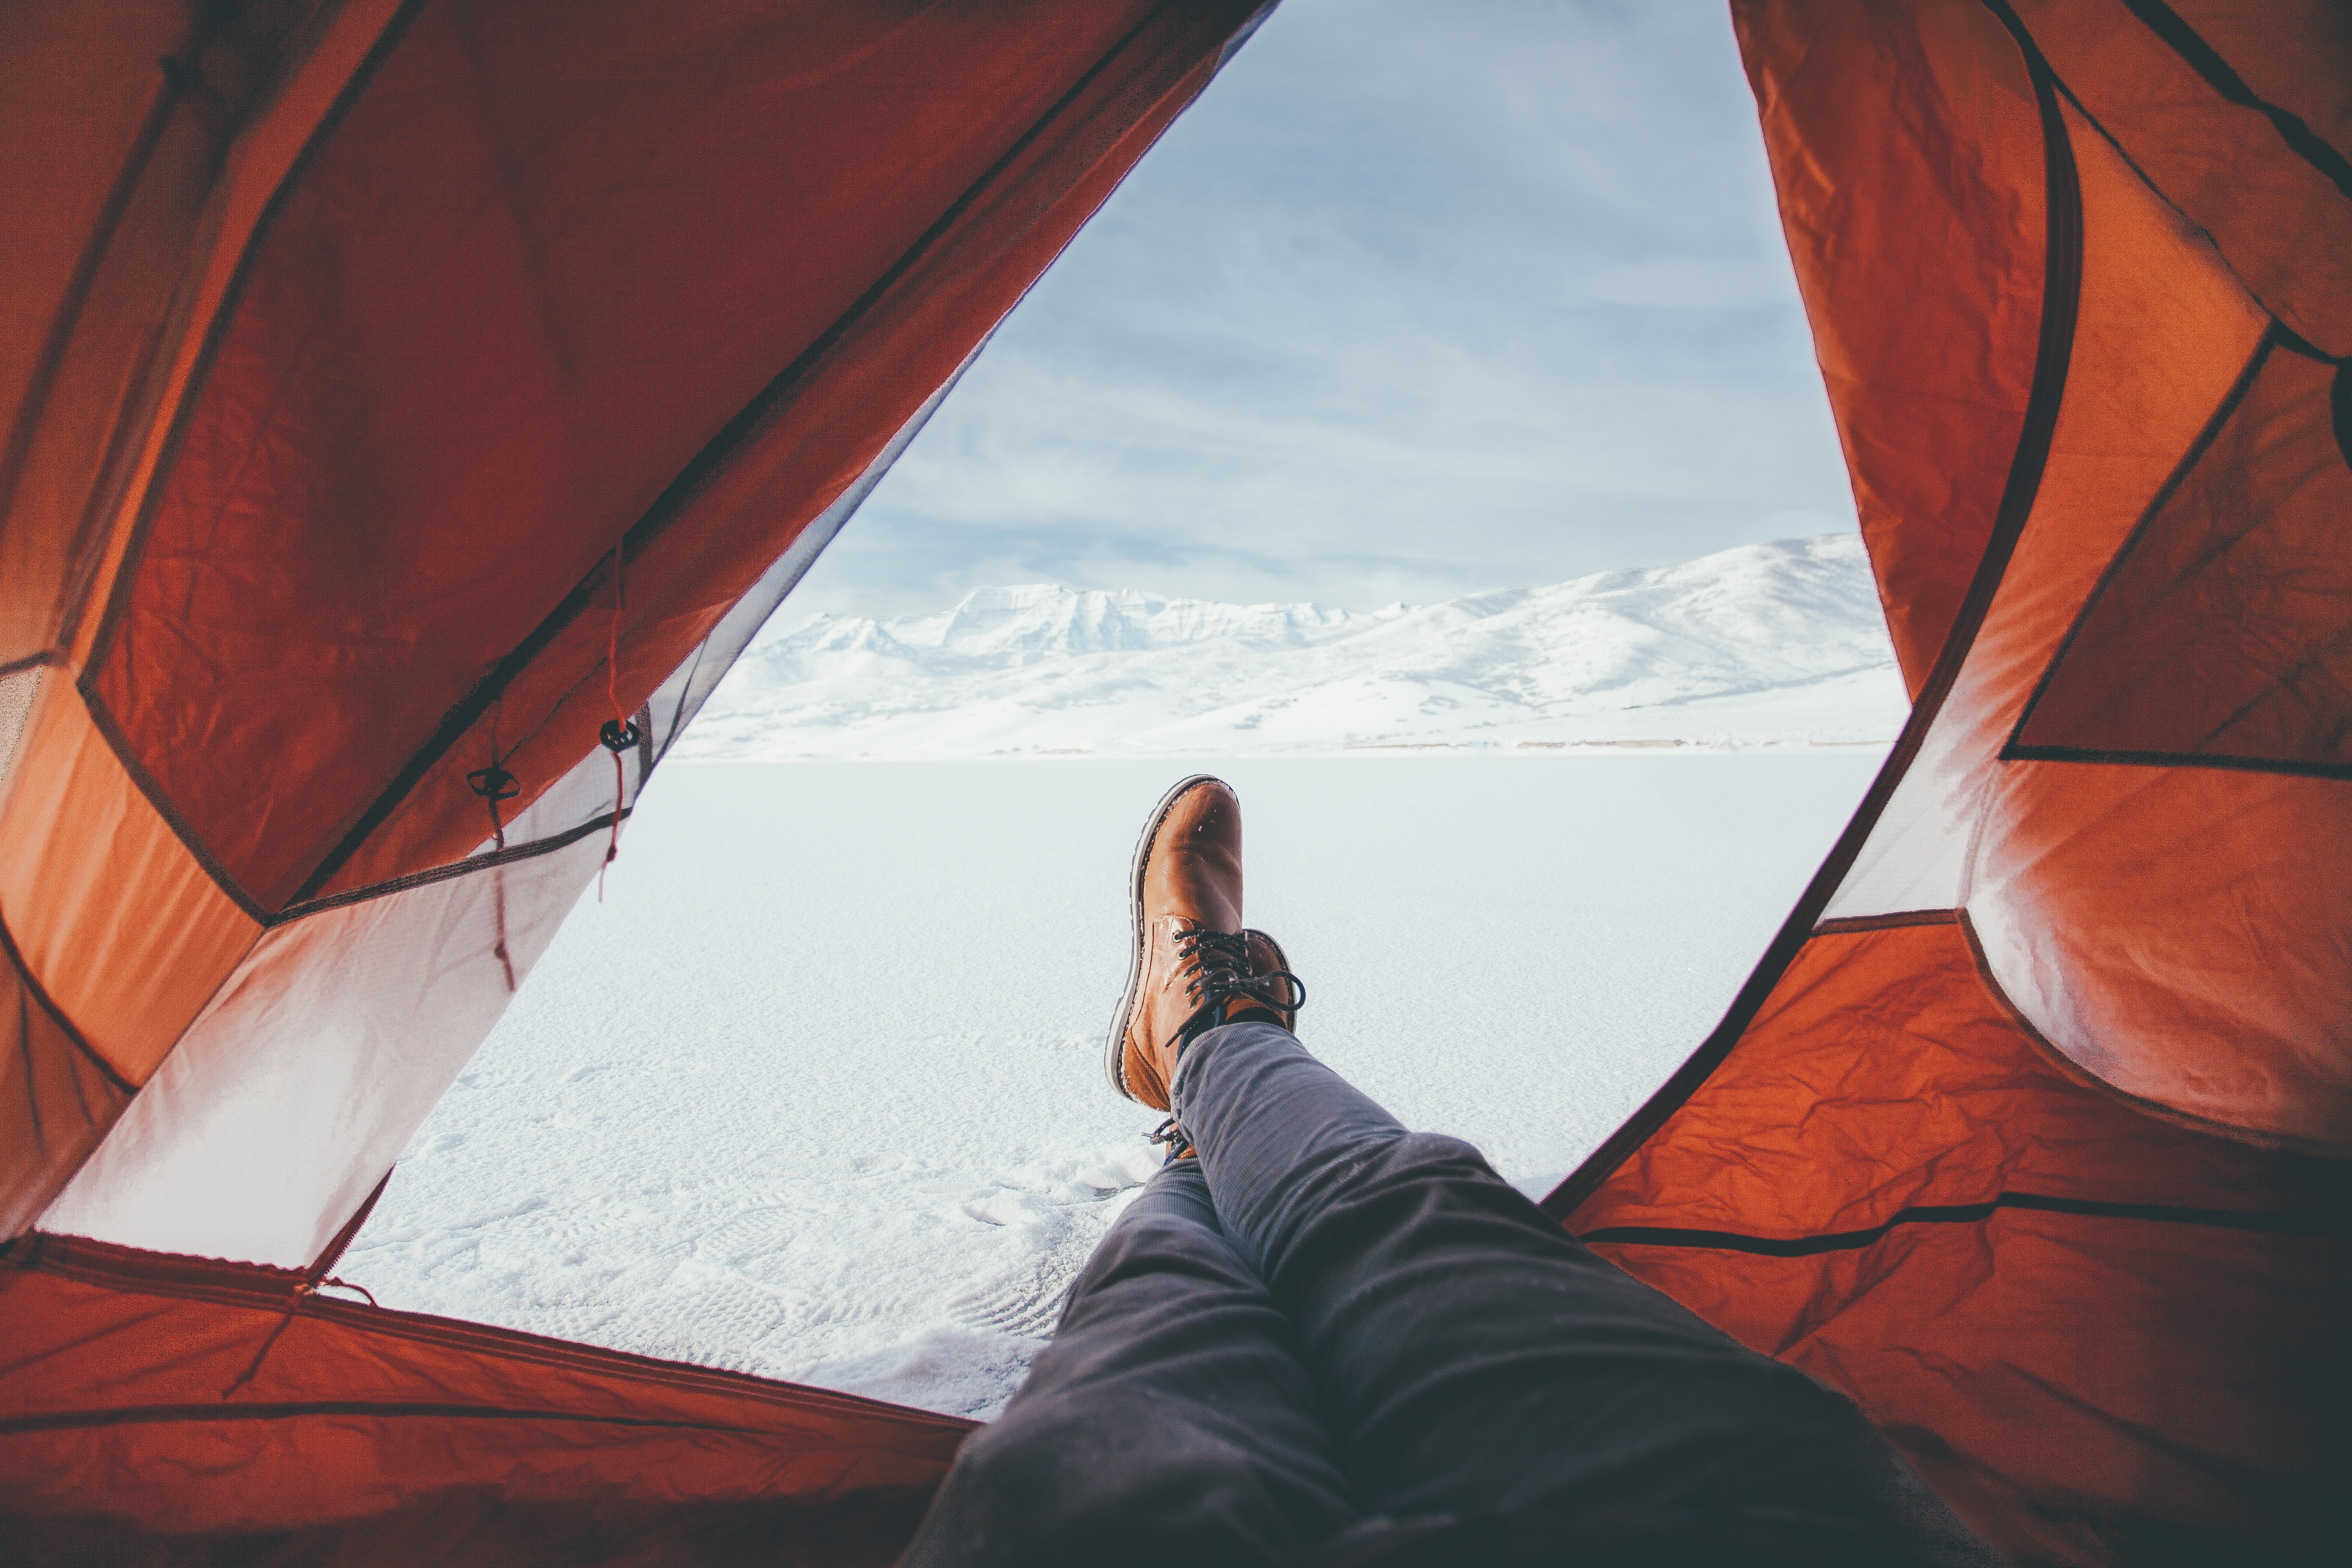 A person in a tent with their feet out the opening camping on a snow covered mountain in Deer Creek Reservation.